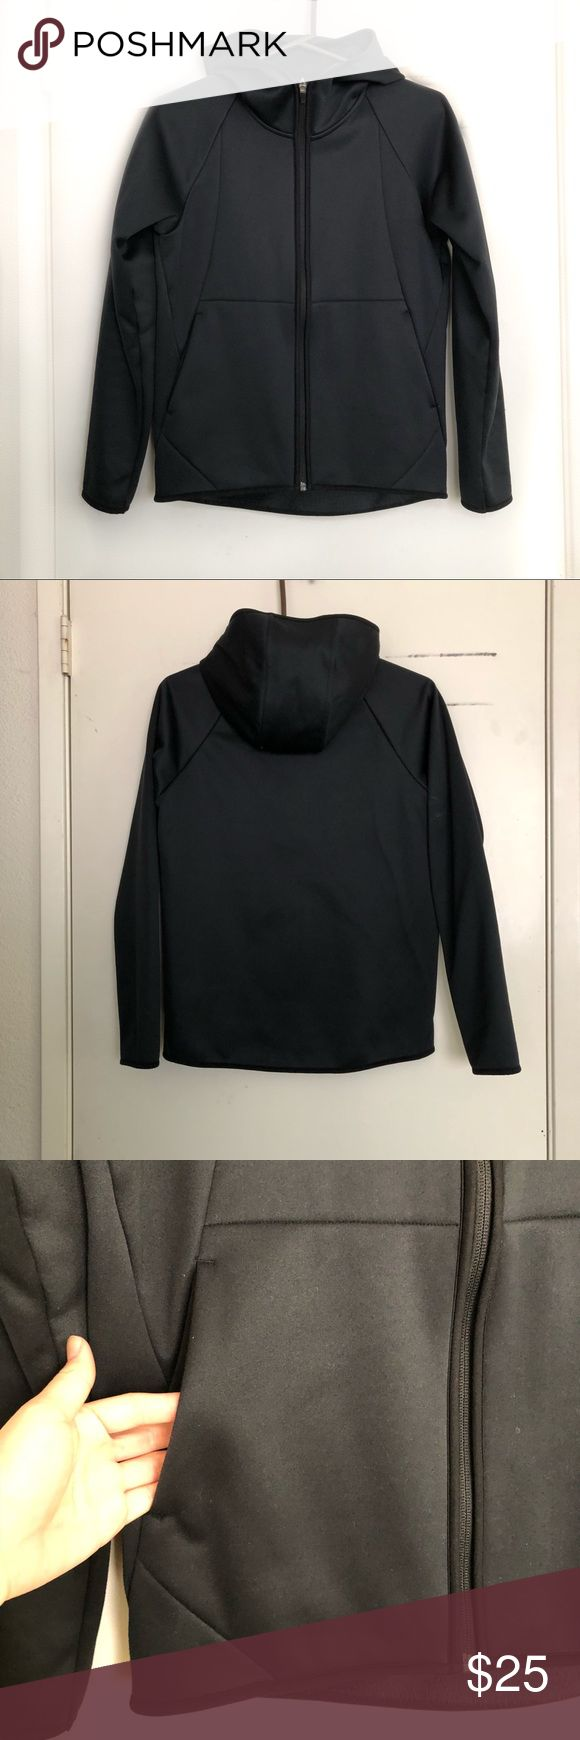 Windguard jacket Womens sz xs. In excellent condition! Has a cozy fleece lining for extra warm and exterior blocks wind to ensure warmth. Uniqlo Jackets & Coats Utility Jackets